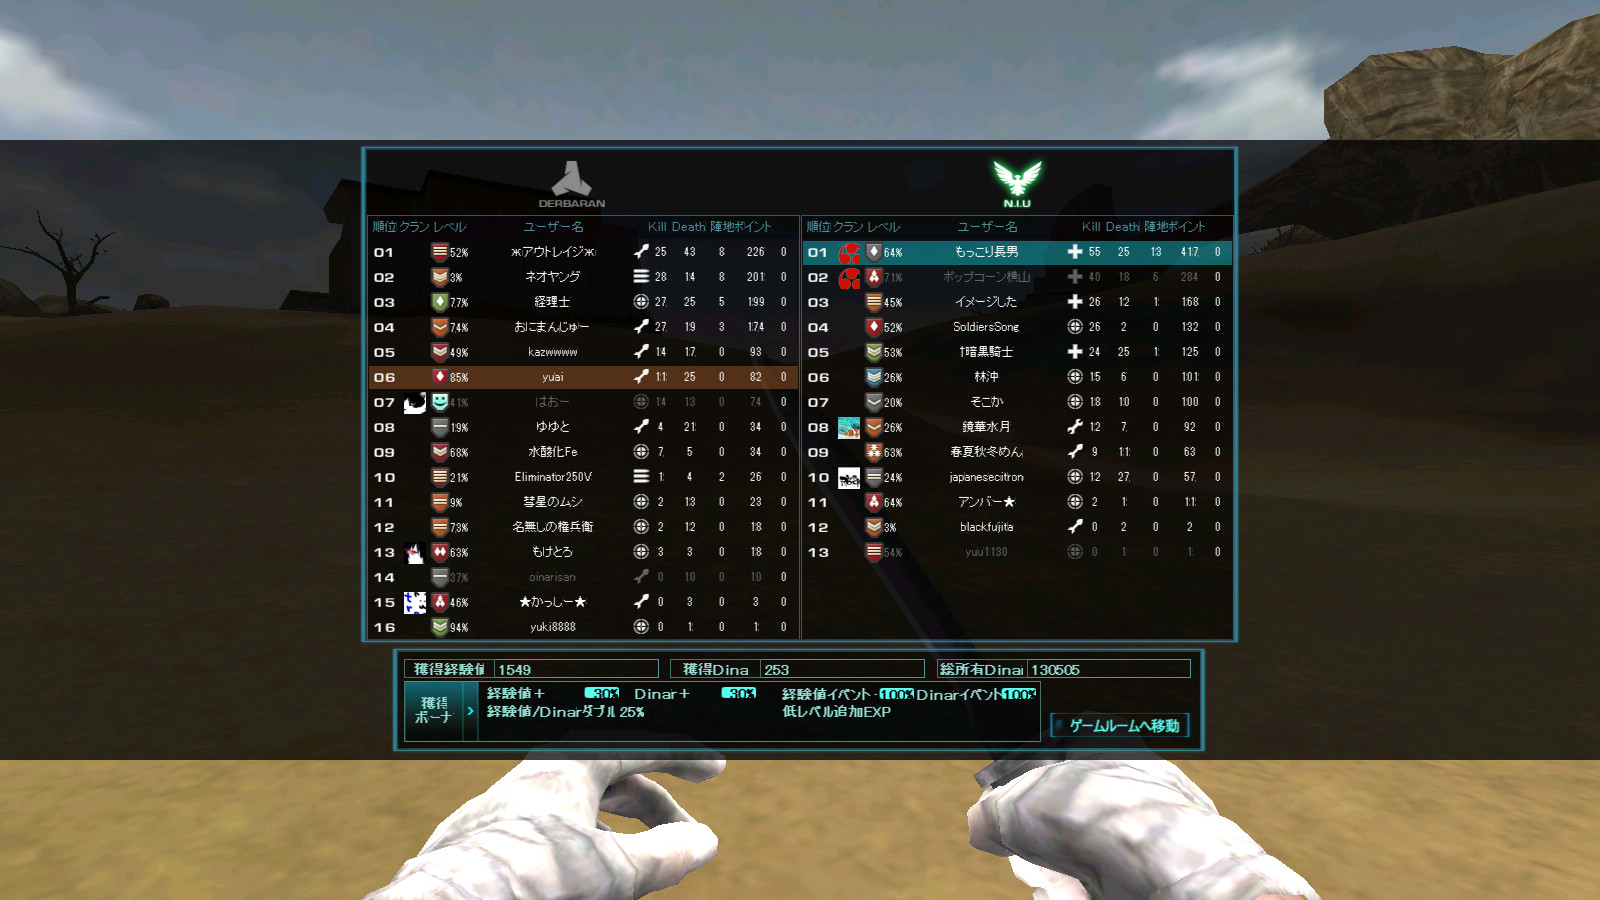 screenshot_457.jpg